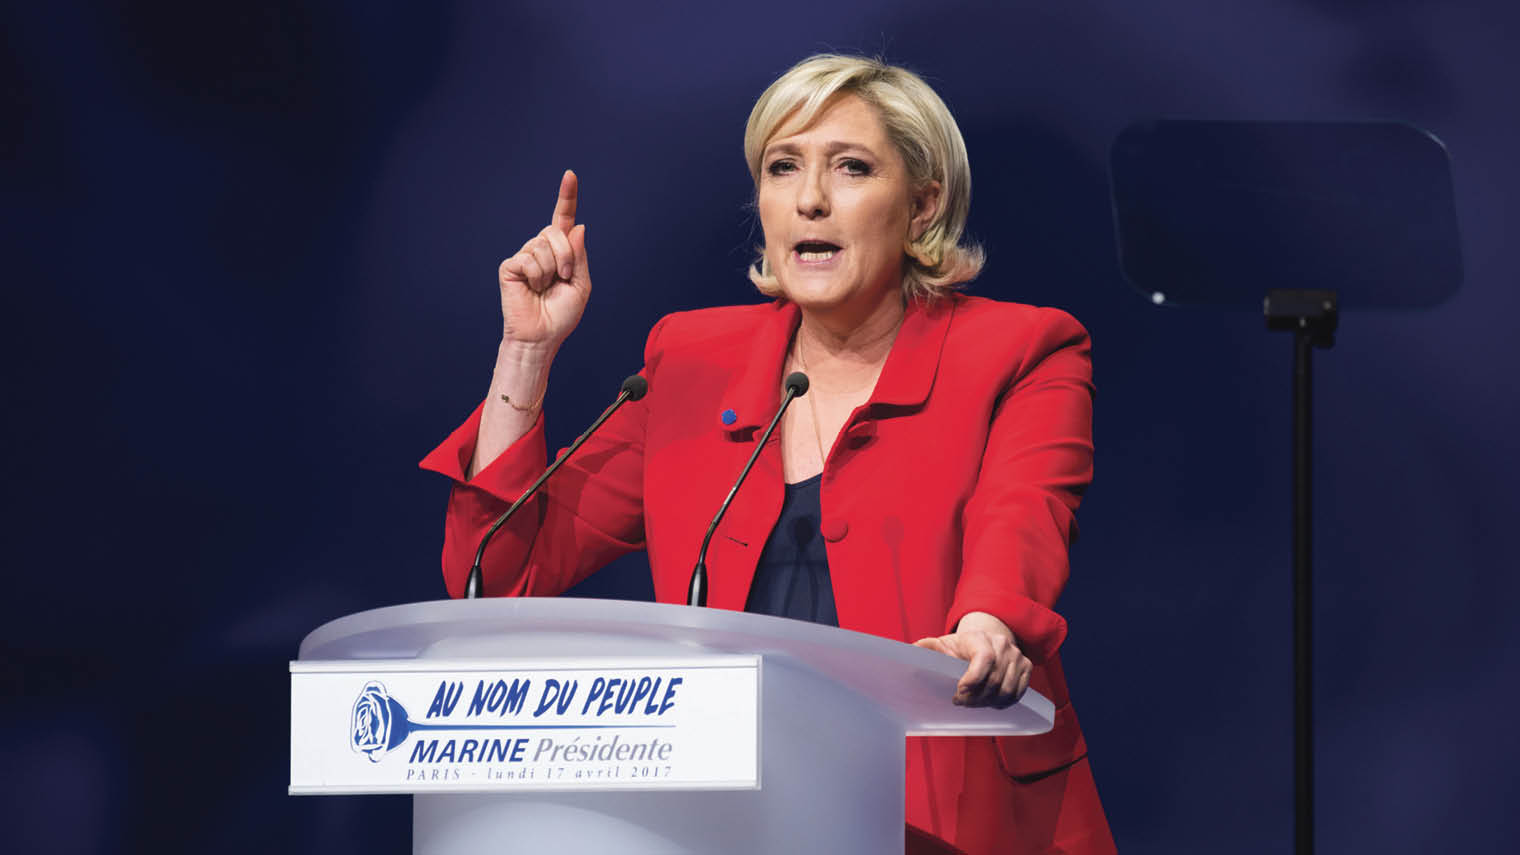 French presidential candidate Marine Le Pen lost this month's election by far more than forecast